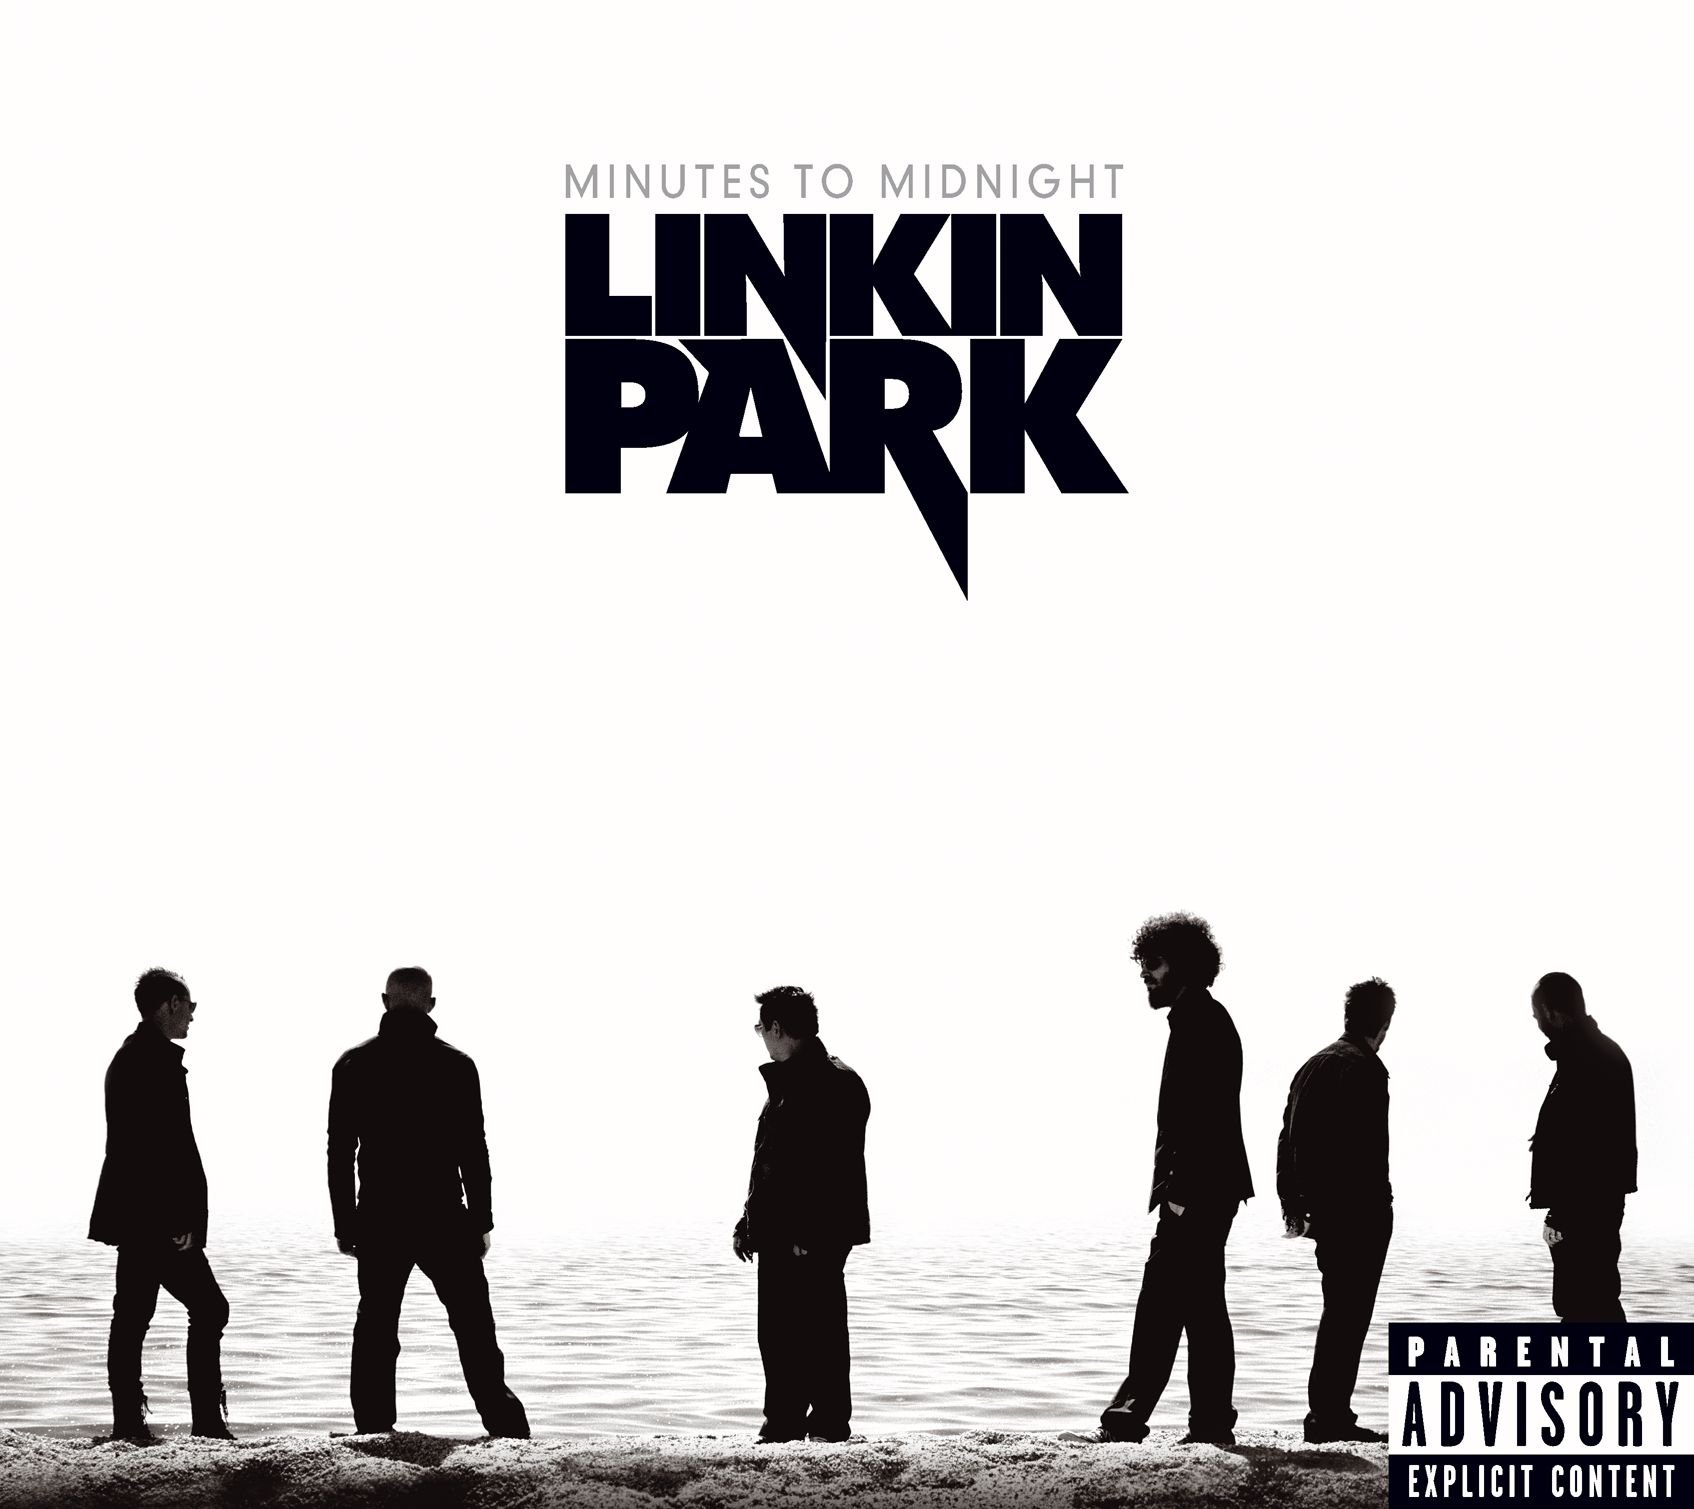 Minutes To Midnight by Warner Bros